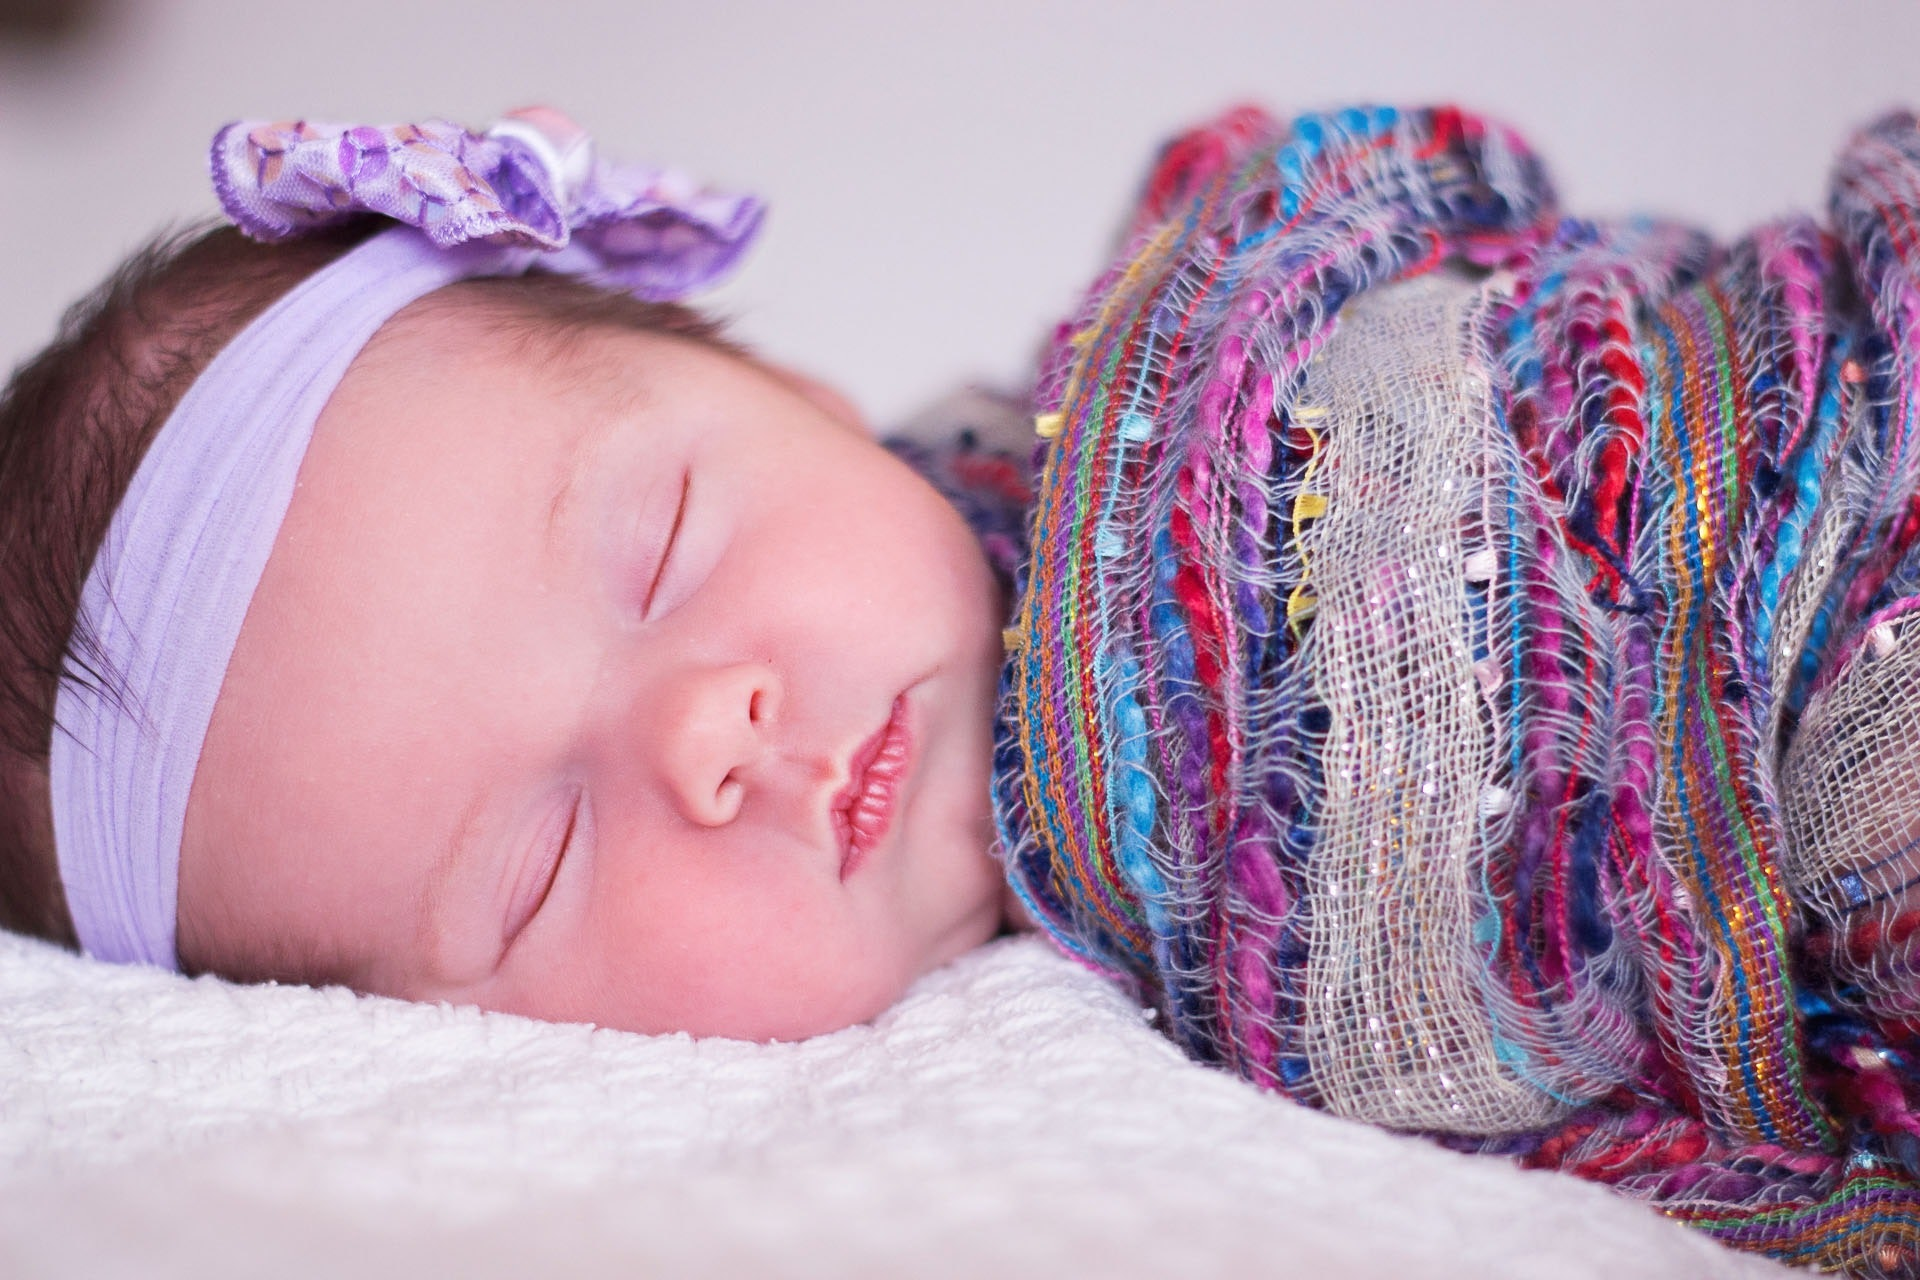 http://www.tiposhop.com/image-upload/baby-beautiful-bed-266061.jpg